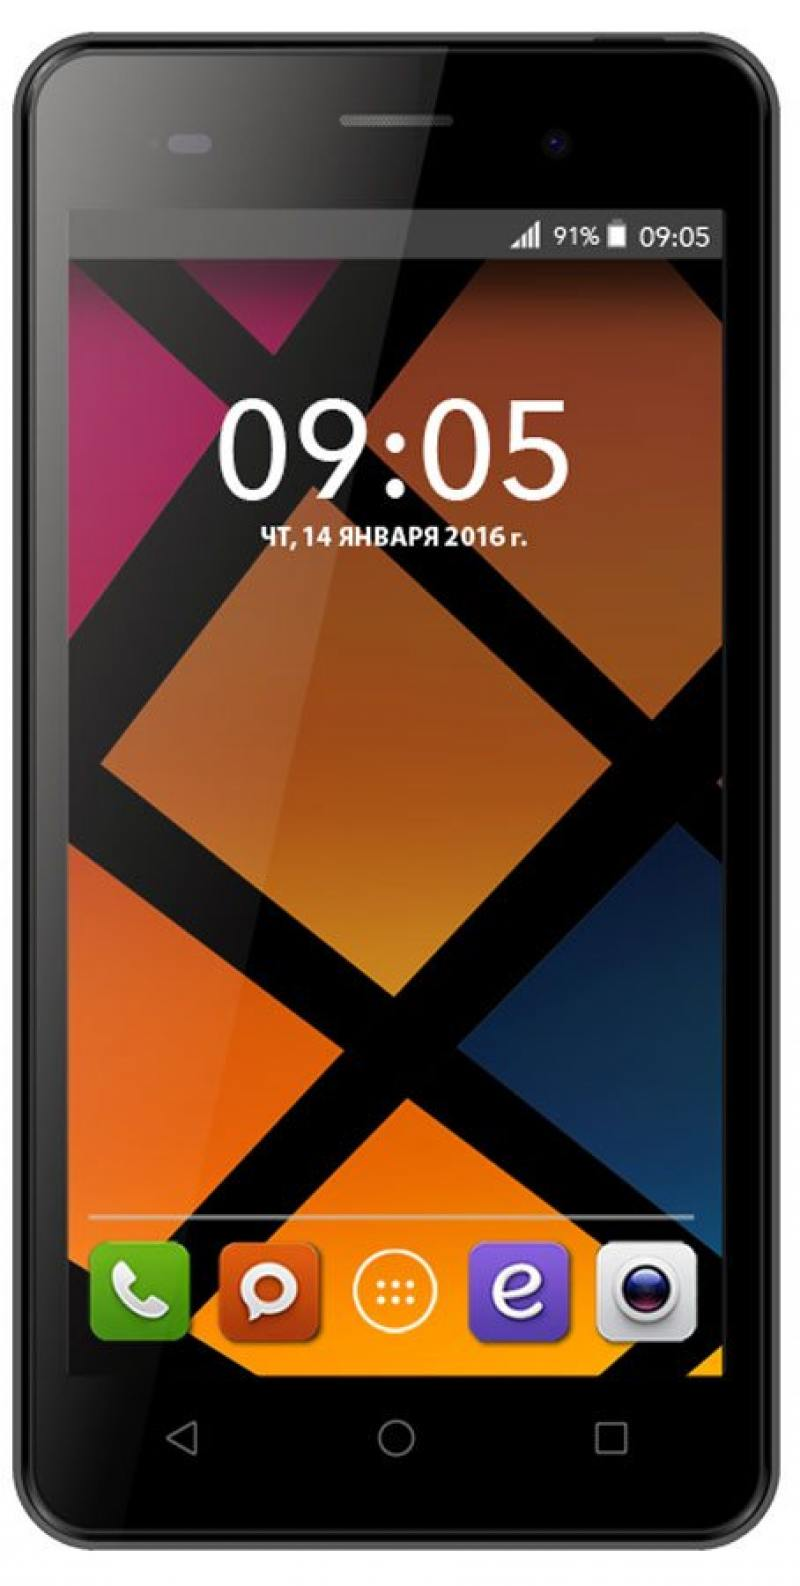 Смартфон BQS-5020 Strike (Black) MediaTek MT6580 (1.3)/1GB/8GB/5.0 1280х720 IPS/2Sim/13Mp, 5Mp Cam/Android 6.0 смартфон bq mobile bqs 5020 strike black matt